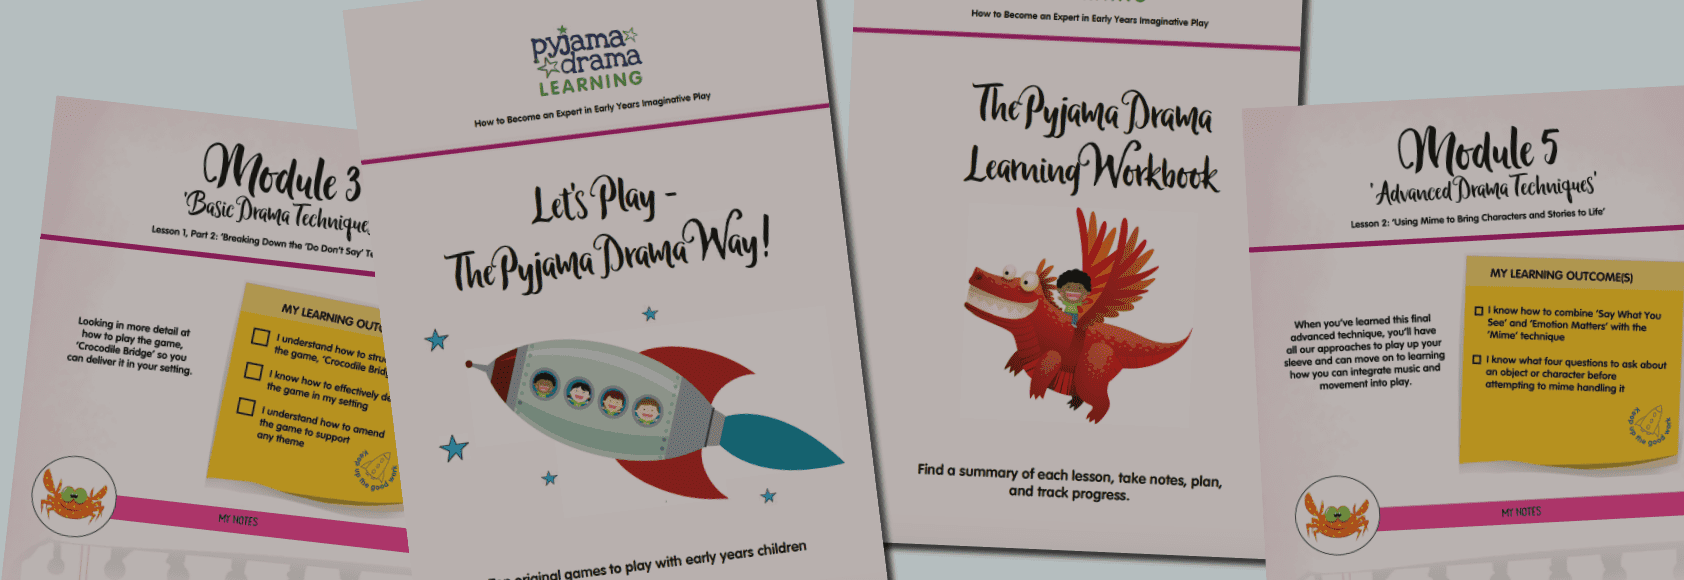 'How to Become an Expert in Early Years Imaginative Play'